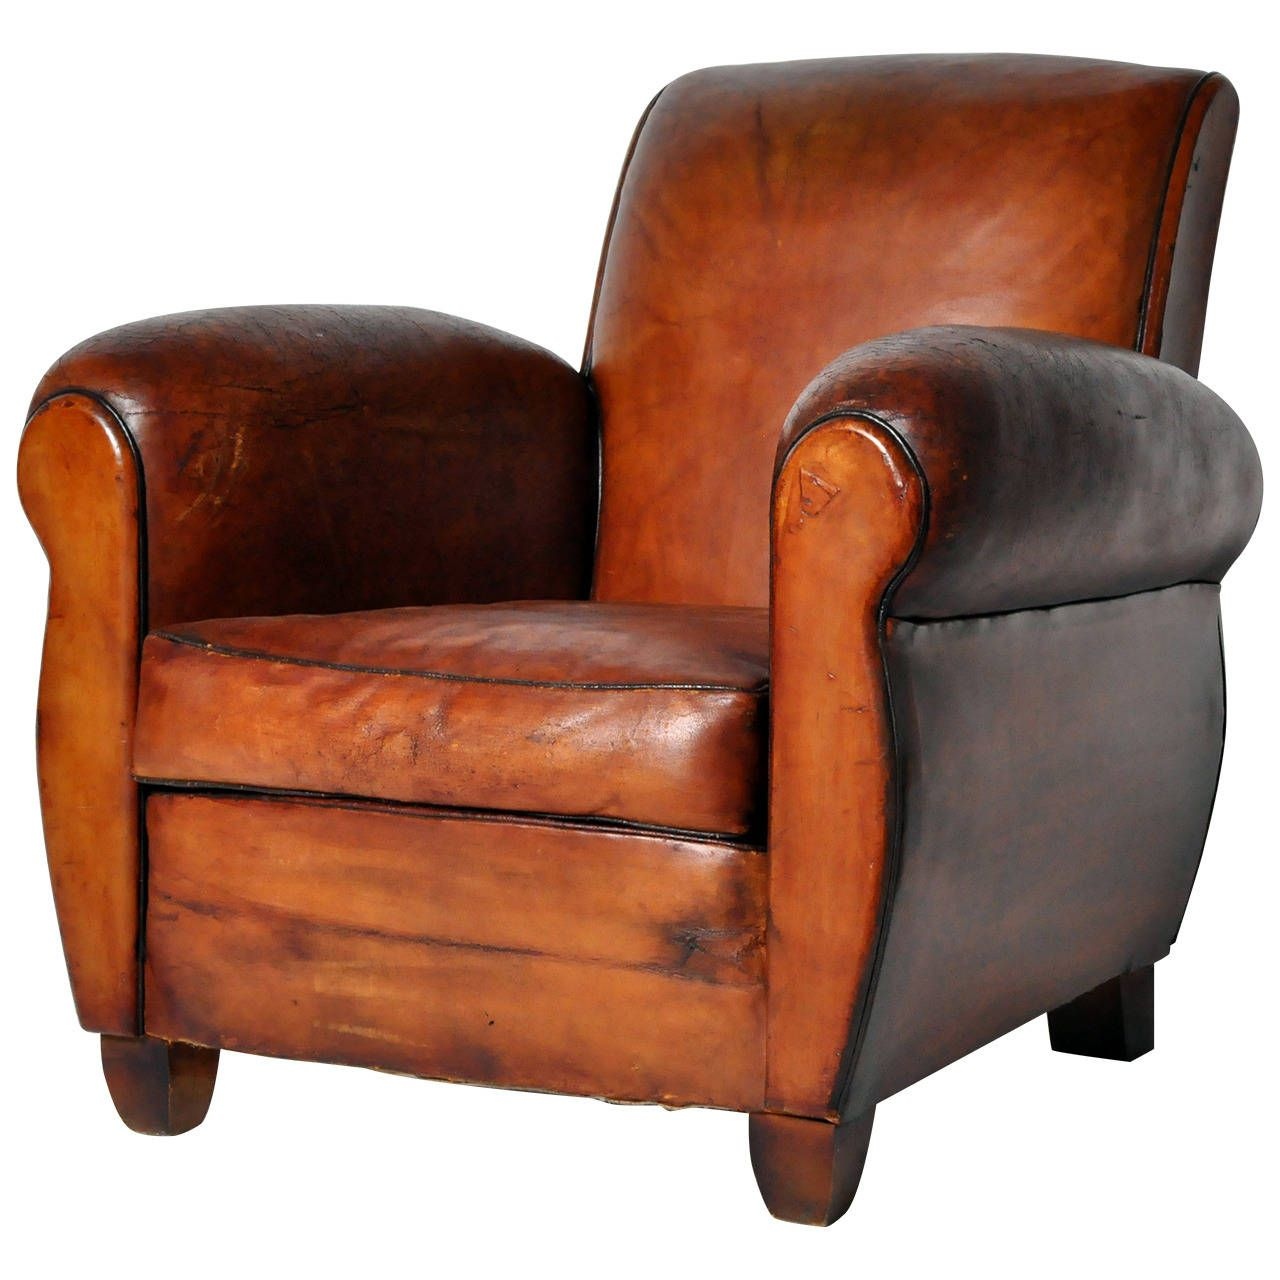 Vintage French Leather Club Chair - Vintage French Leather Club Chair Leather Club Chairs, Upholstery